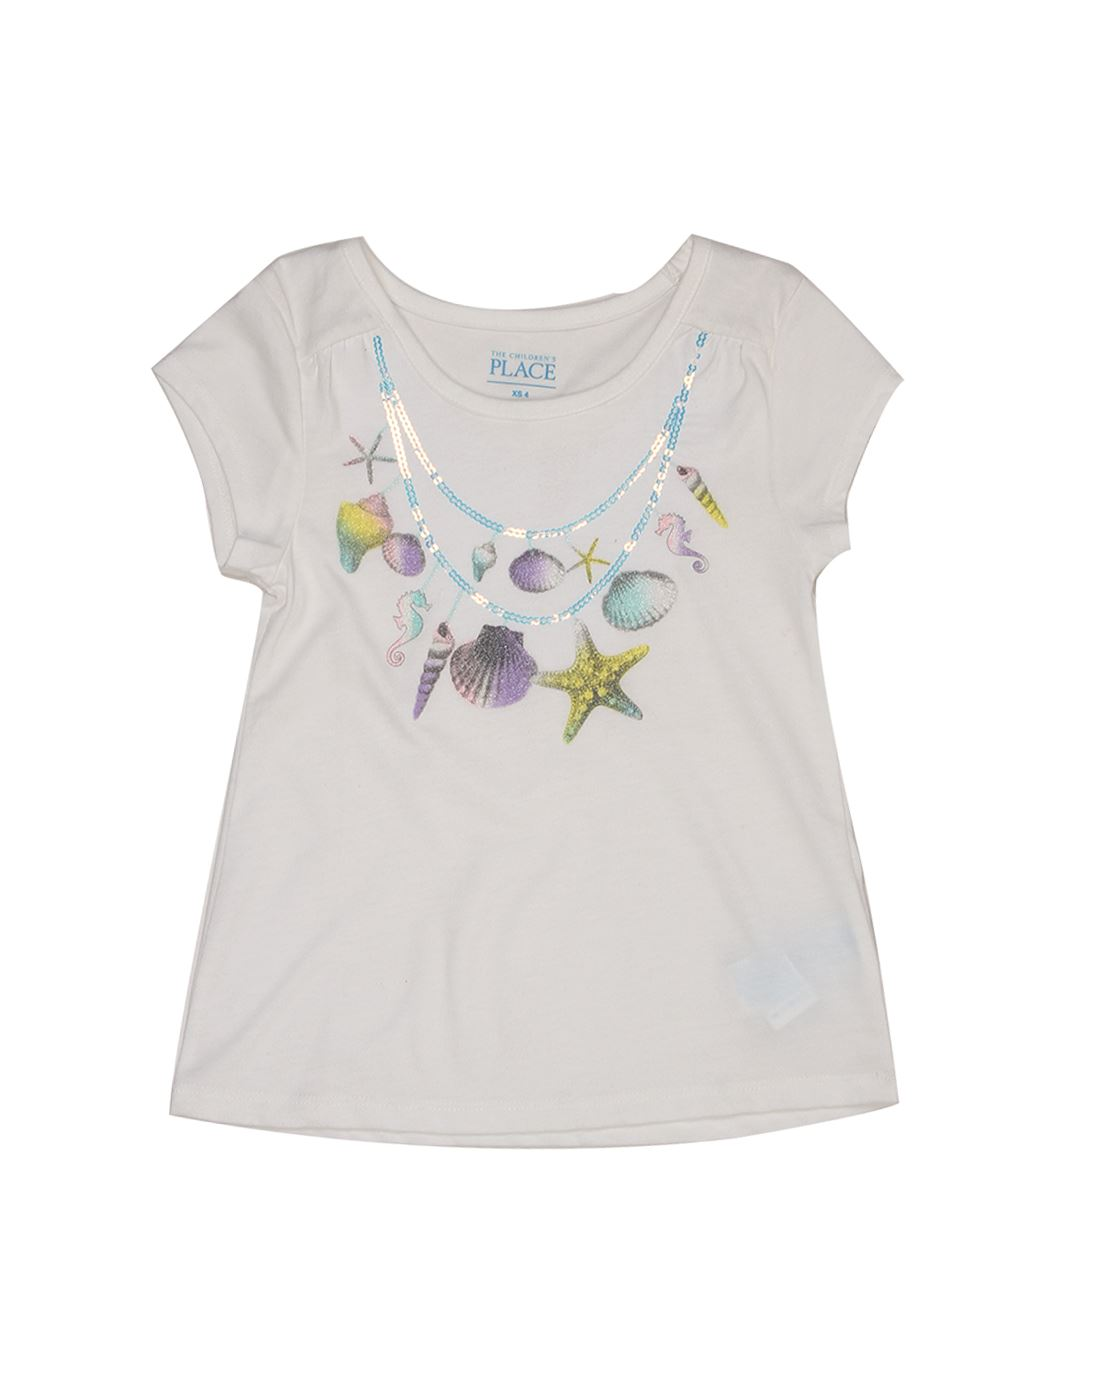 The Children's Place Girls Casual White Top